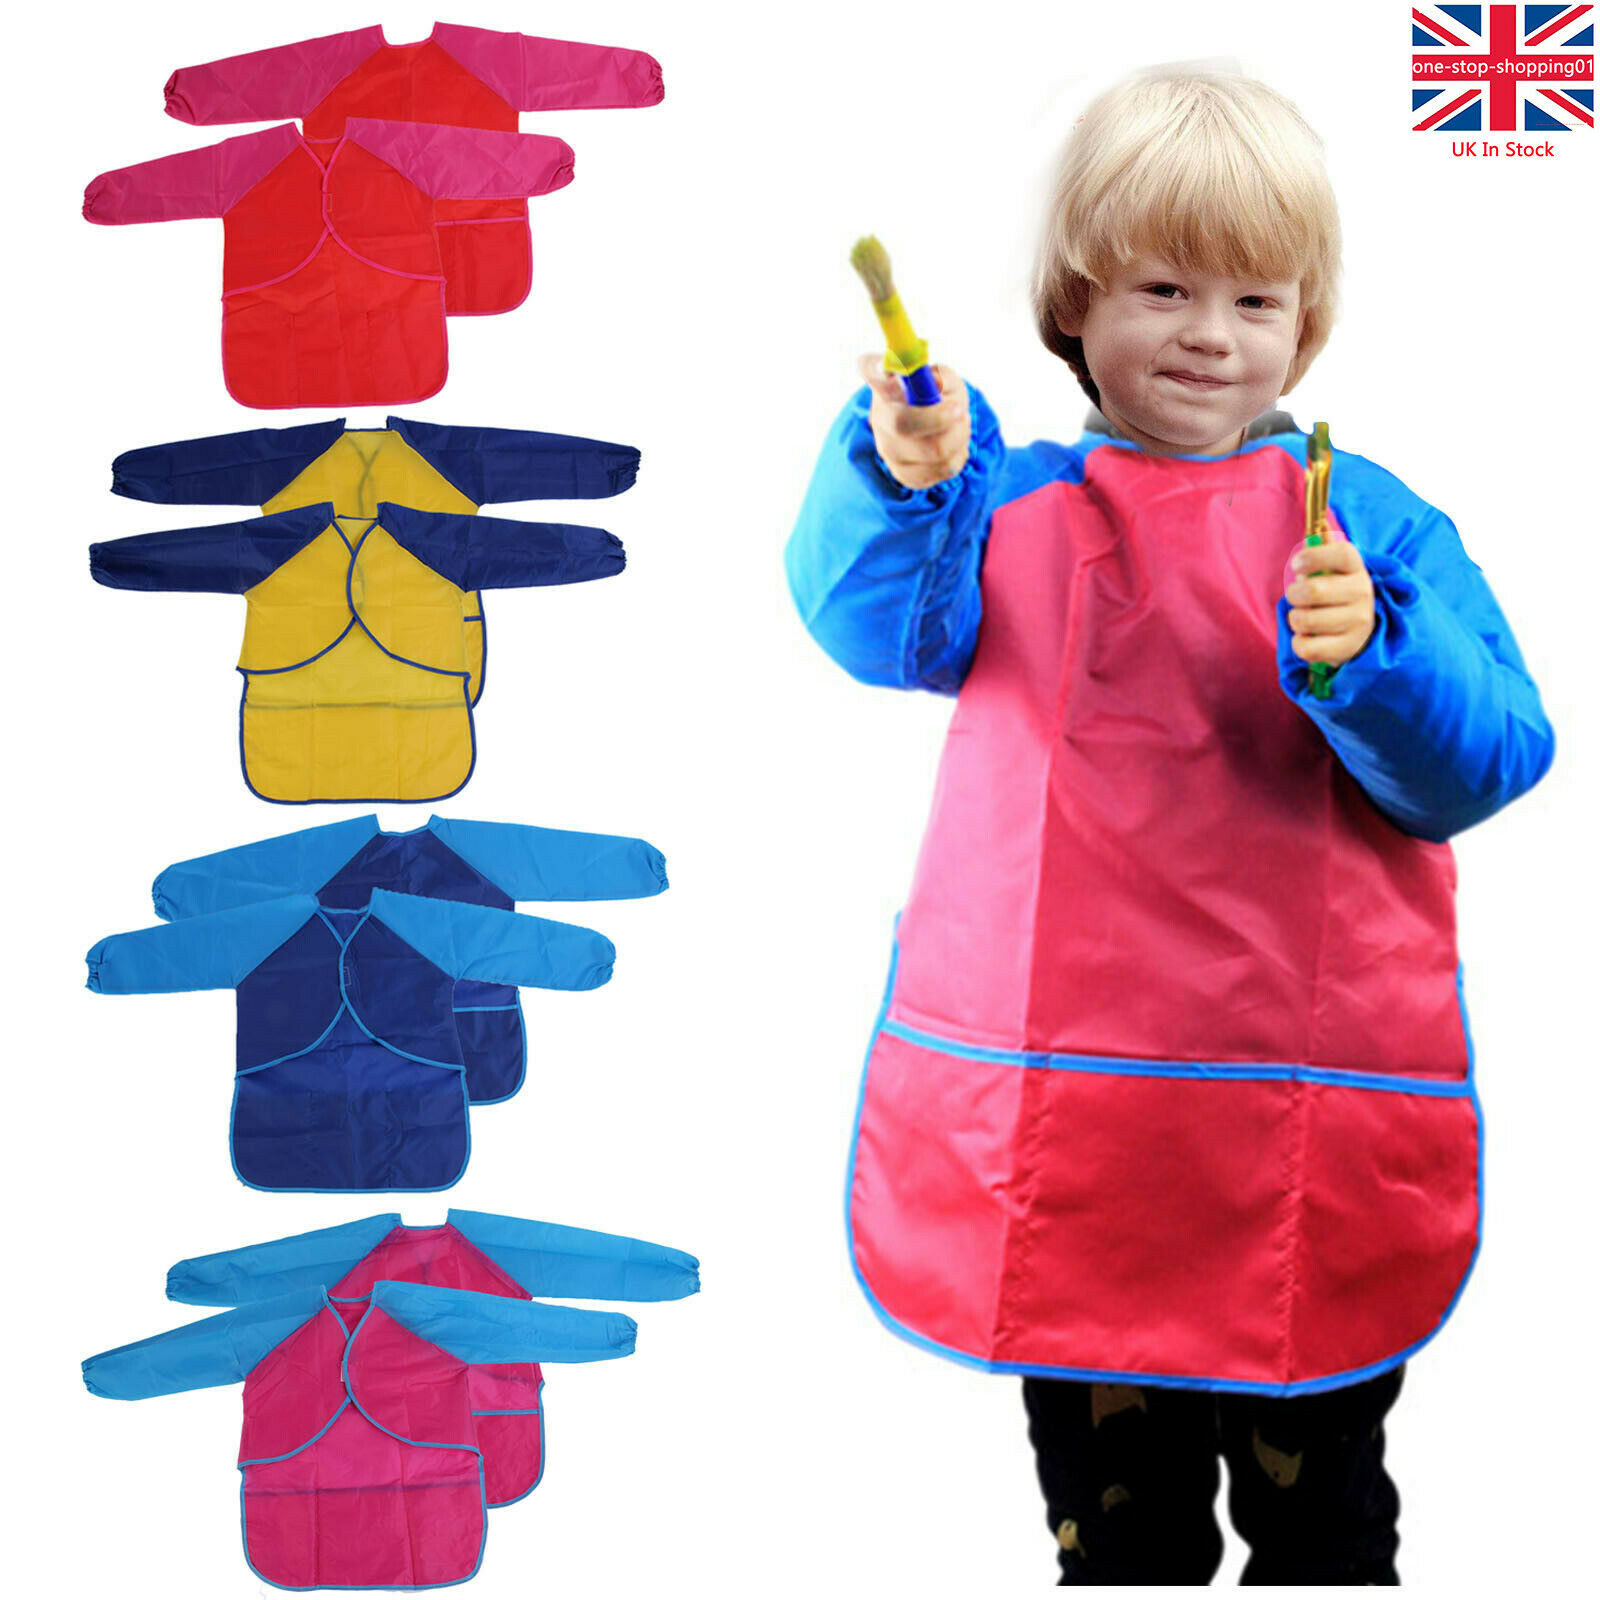 Boys Girls Kids Childs Art Painting Crafts Smock School Apron Red or Royal